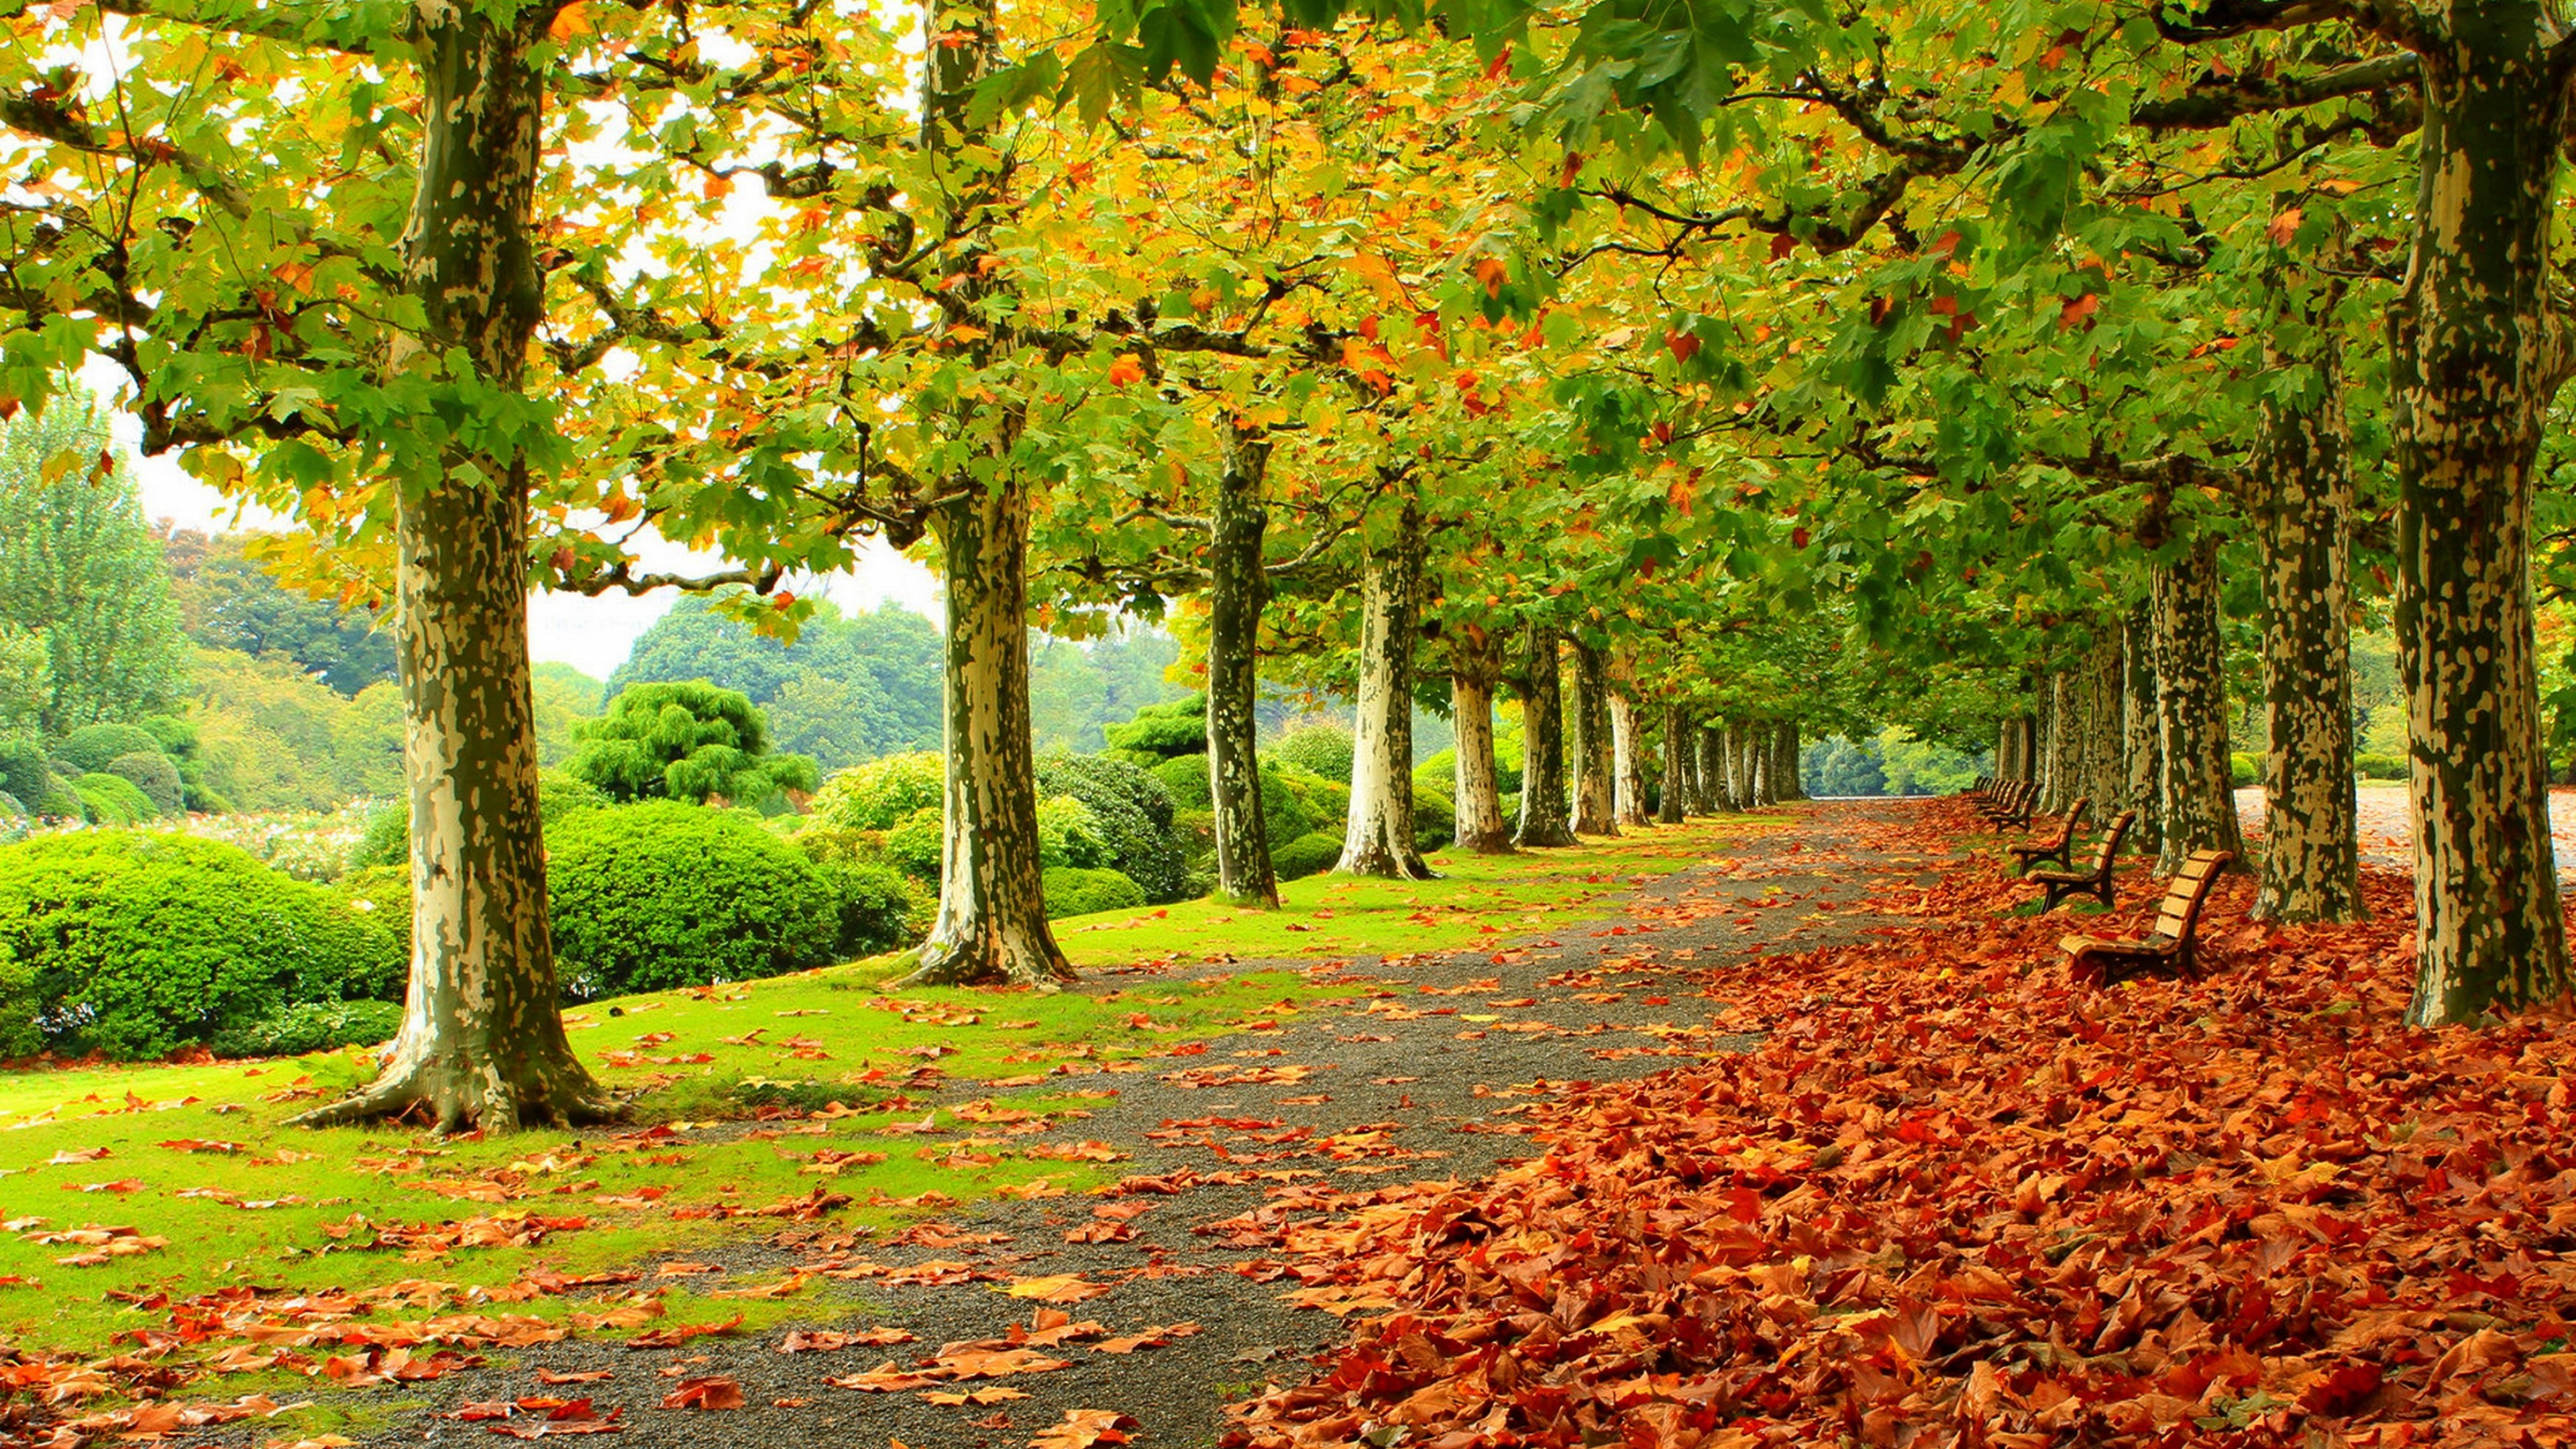 Autumn Scenery Wallpapers Pictures Images